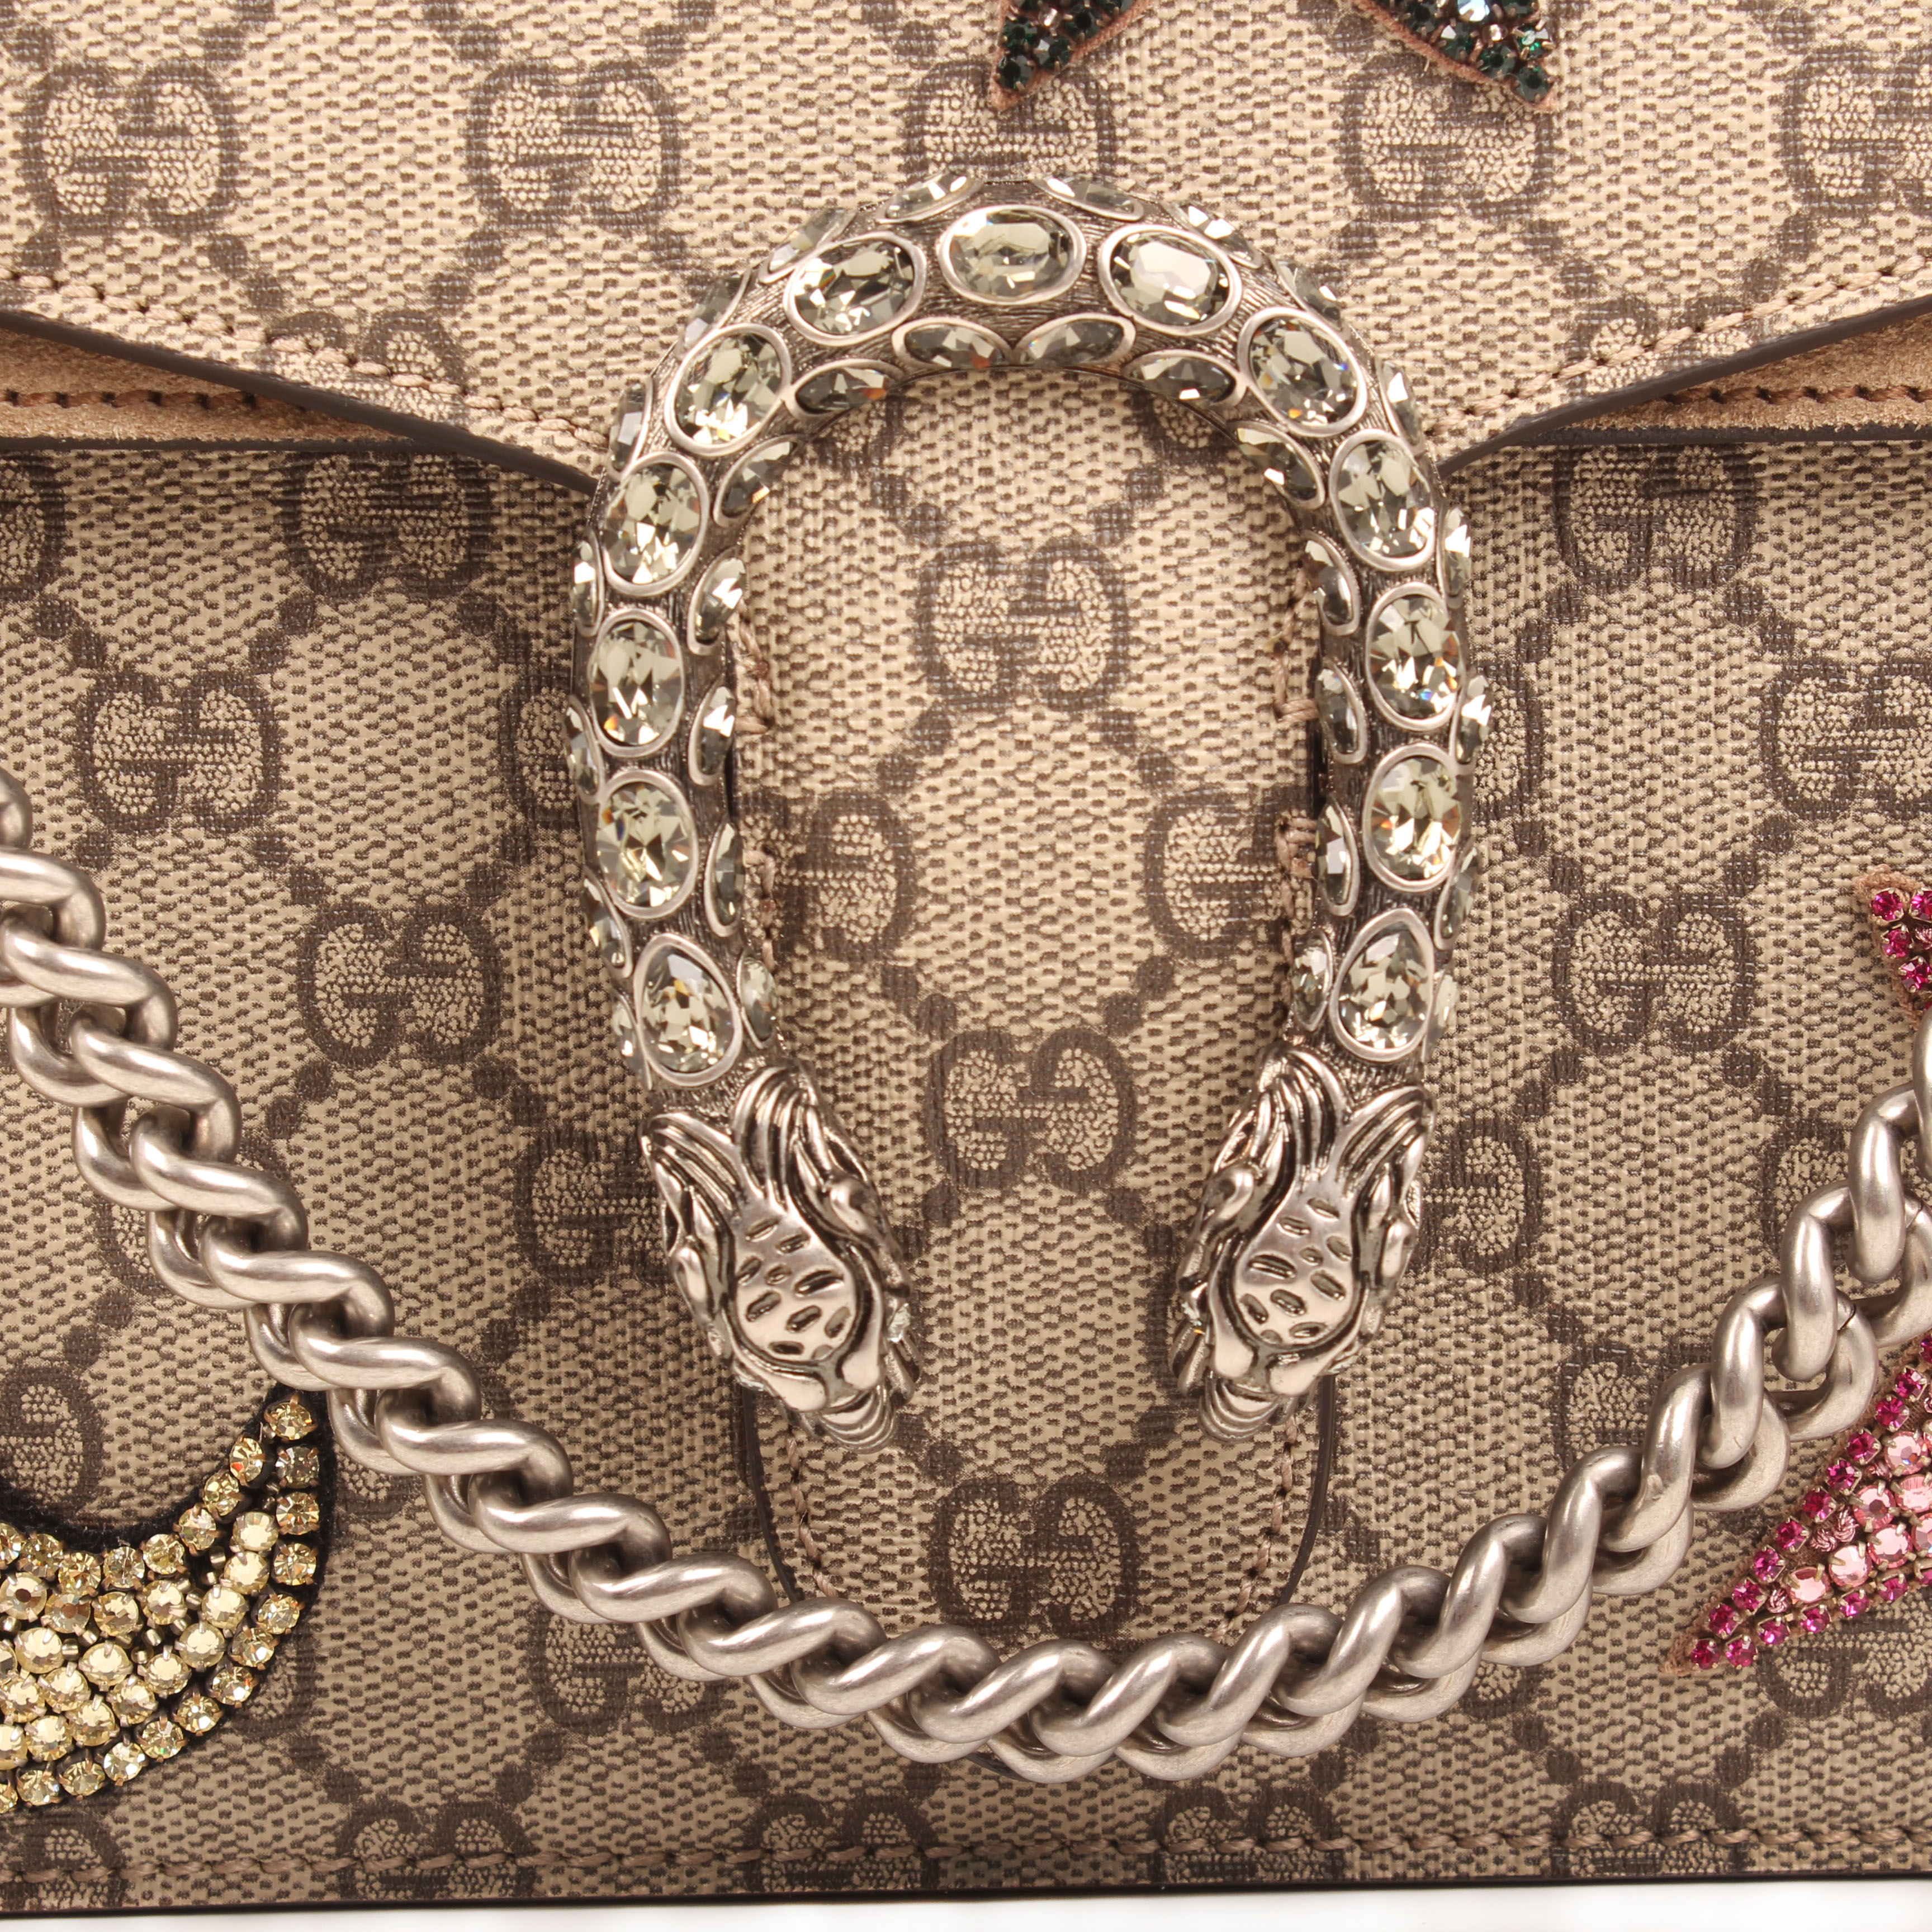 gucci shoulder bag dionysus embroidered rhinestones suede taupe gg supreme canvas tiger closure and chain